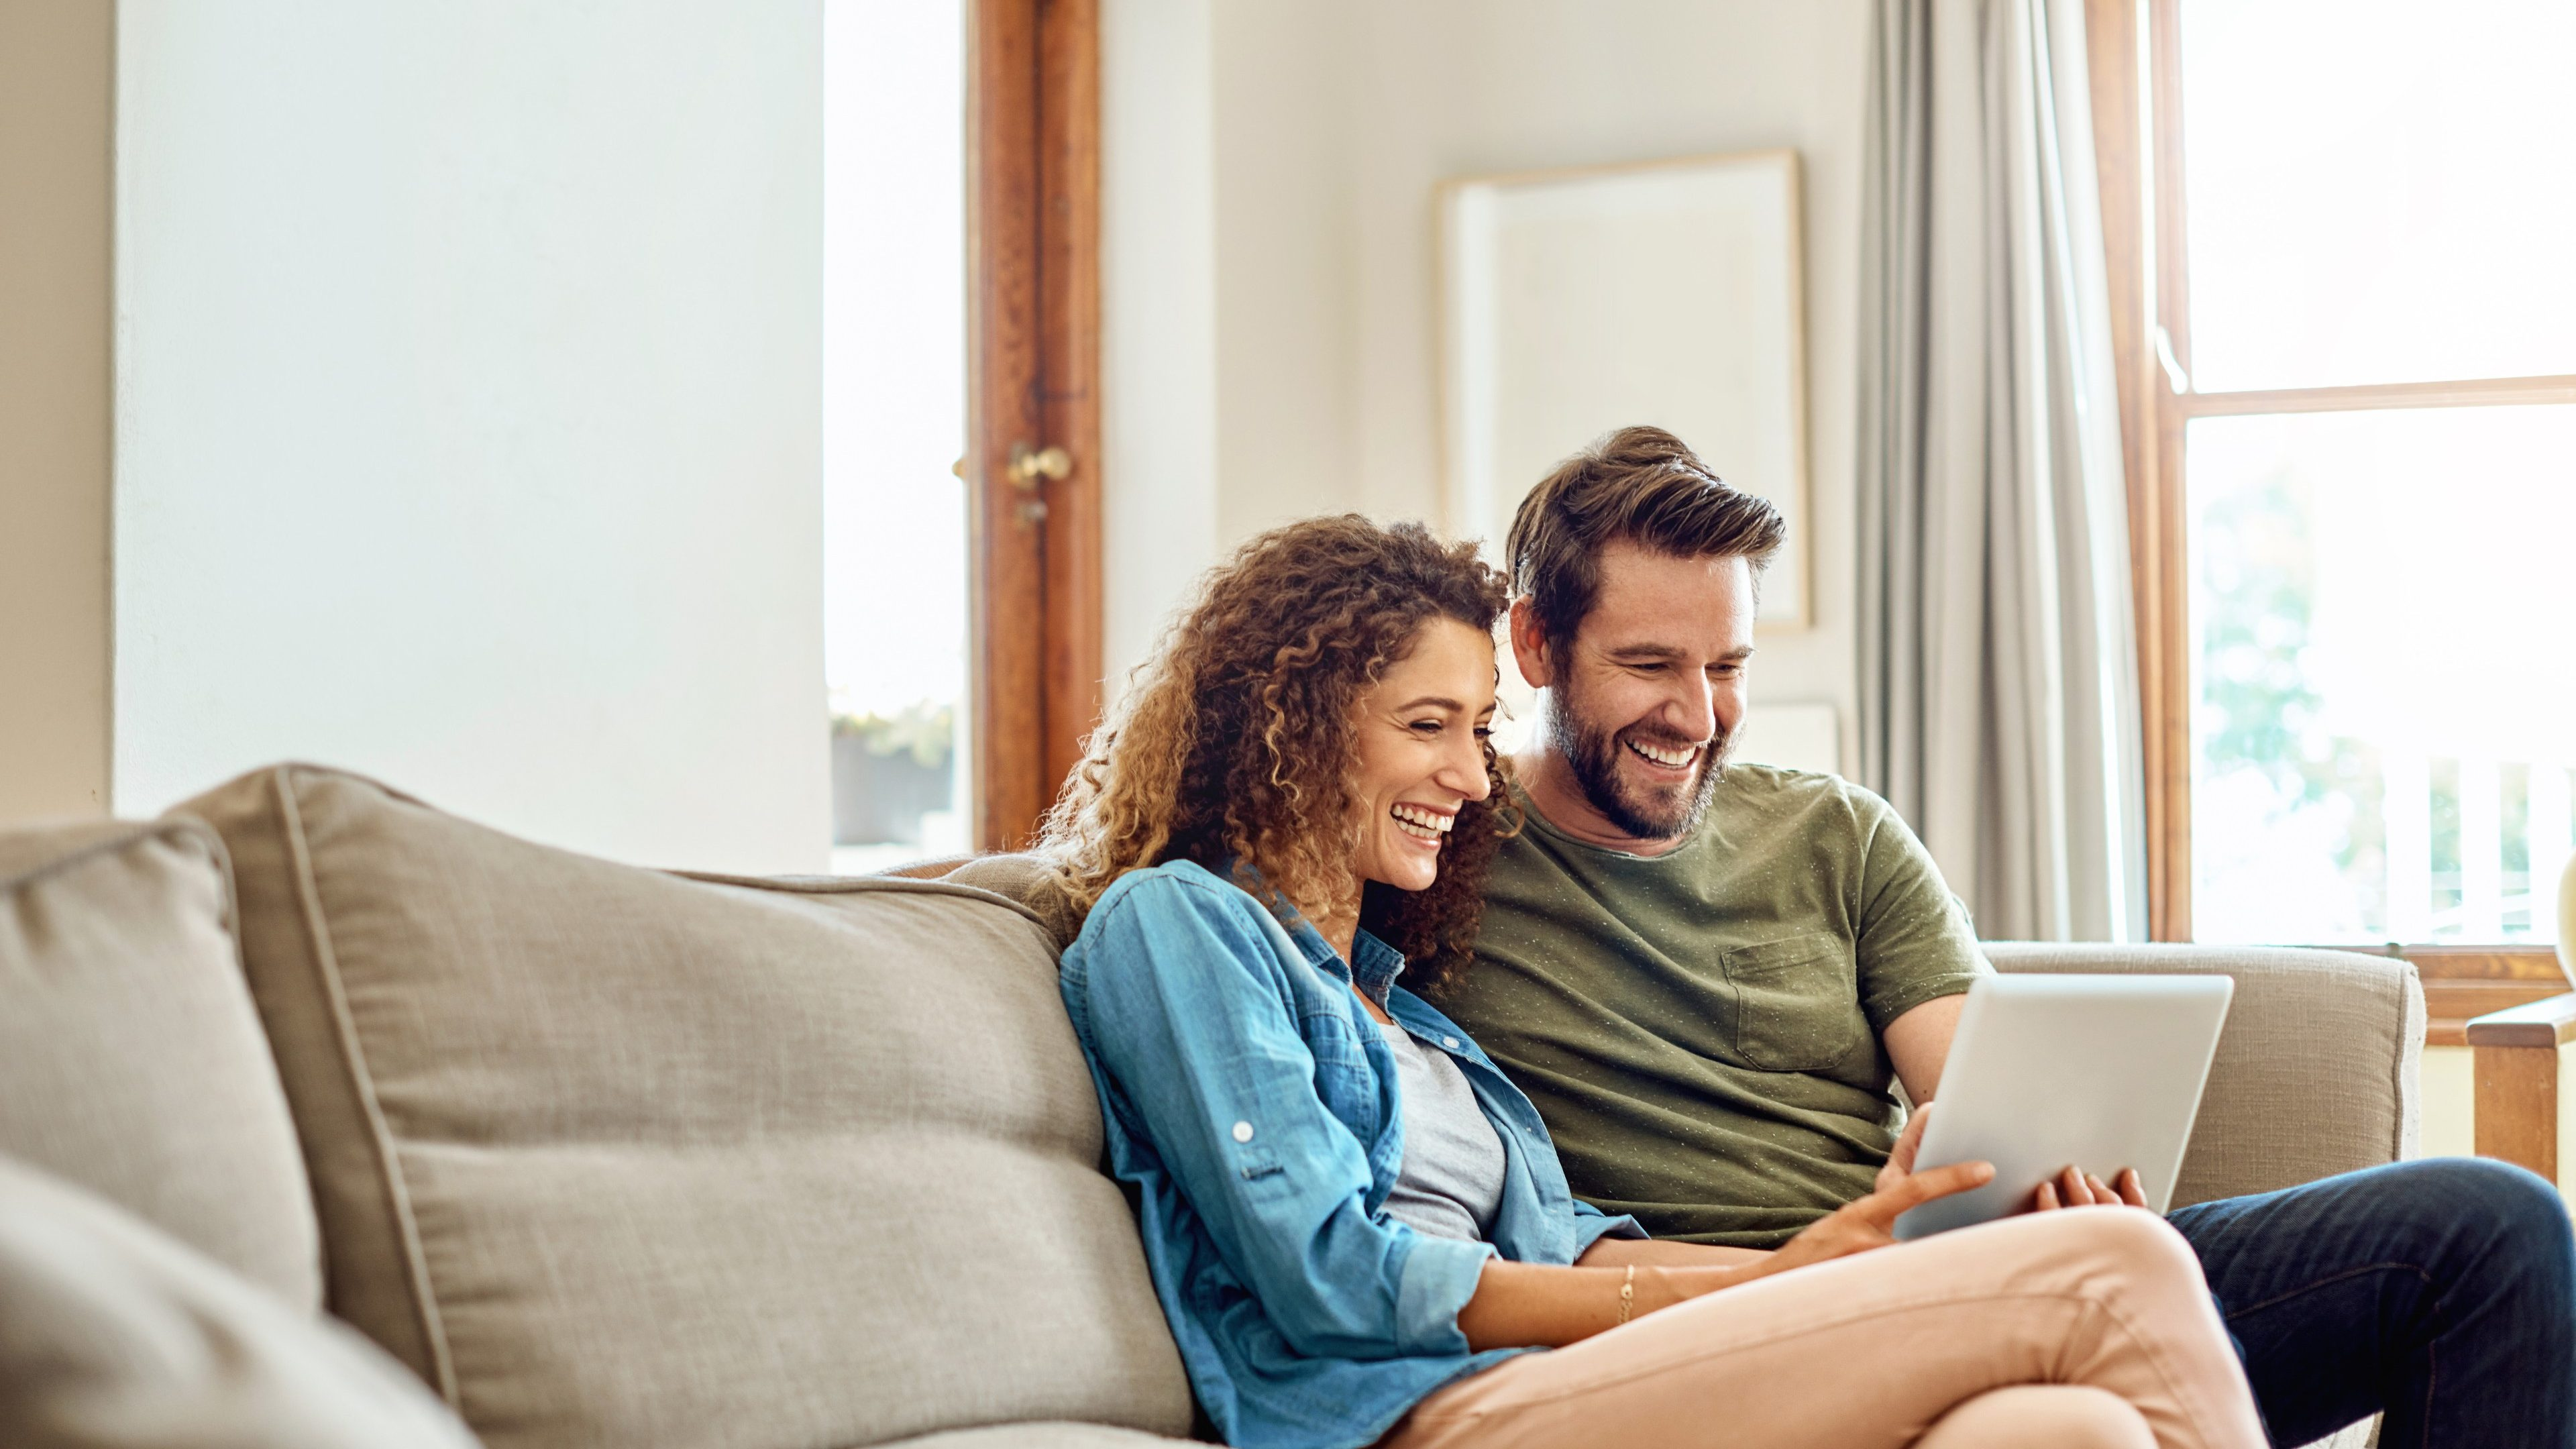 Shot of a happy young couple using a digital tablet together on the sofa at home